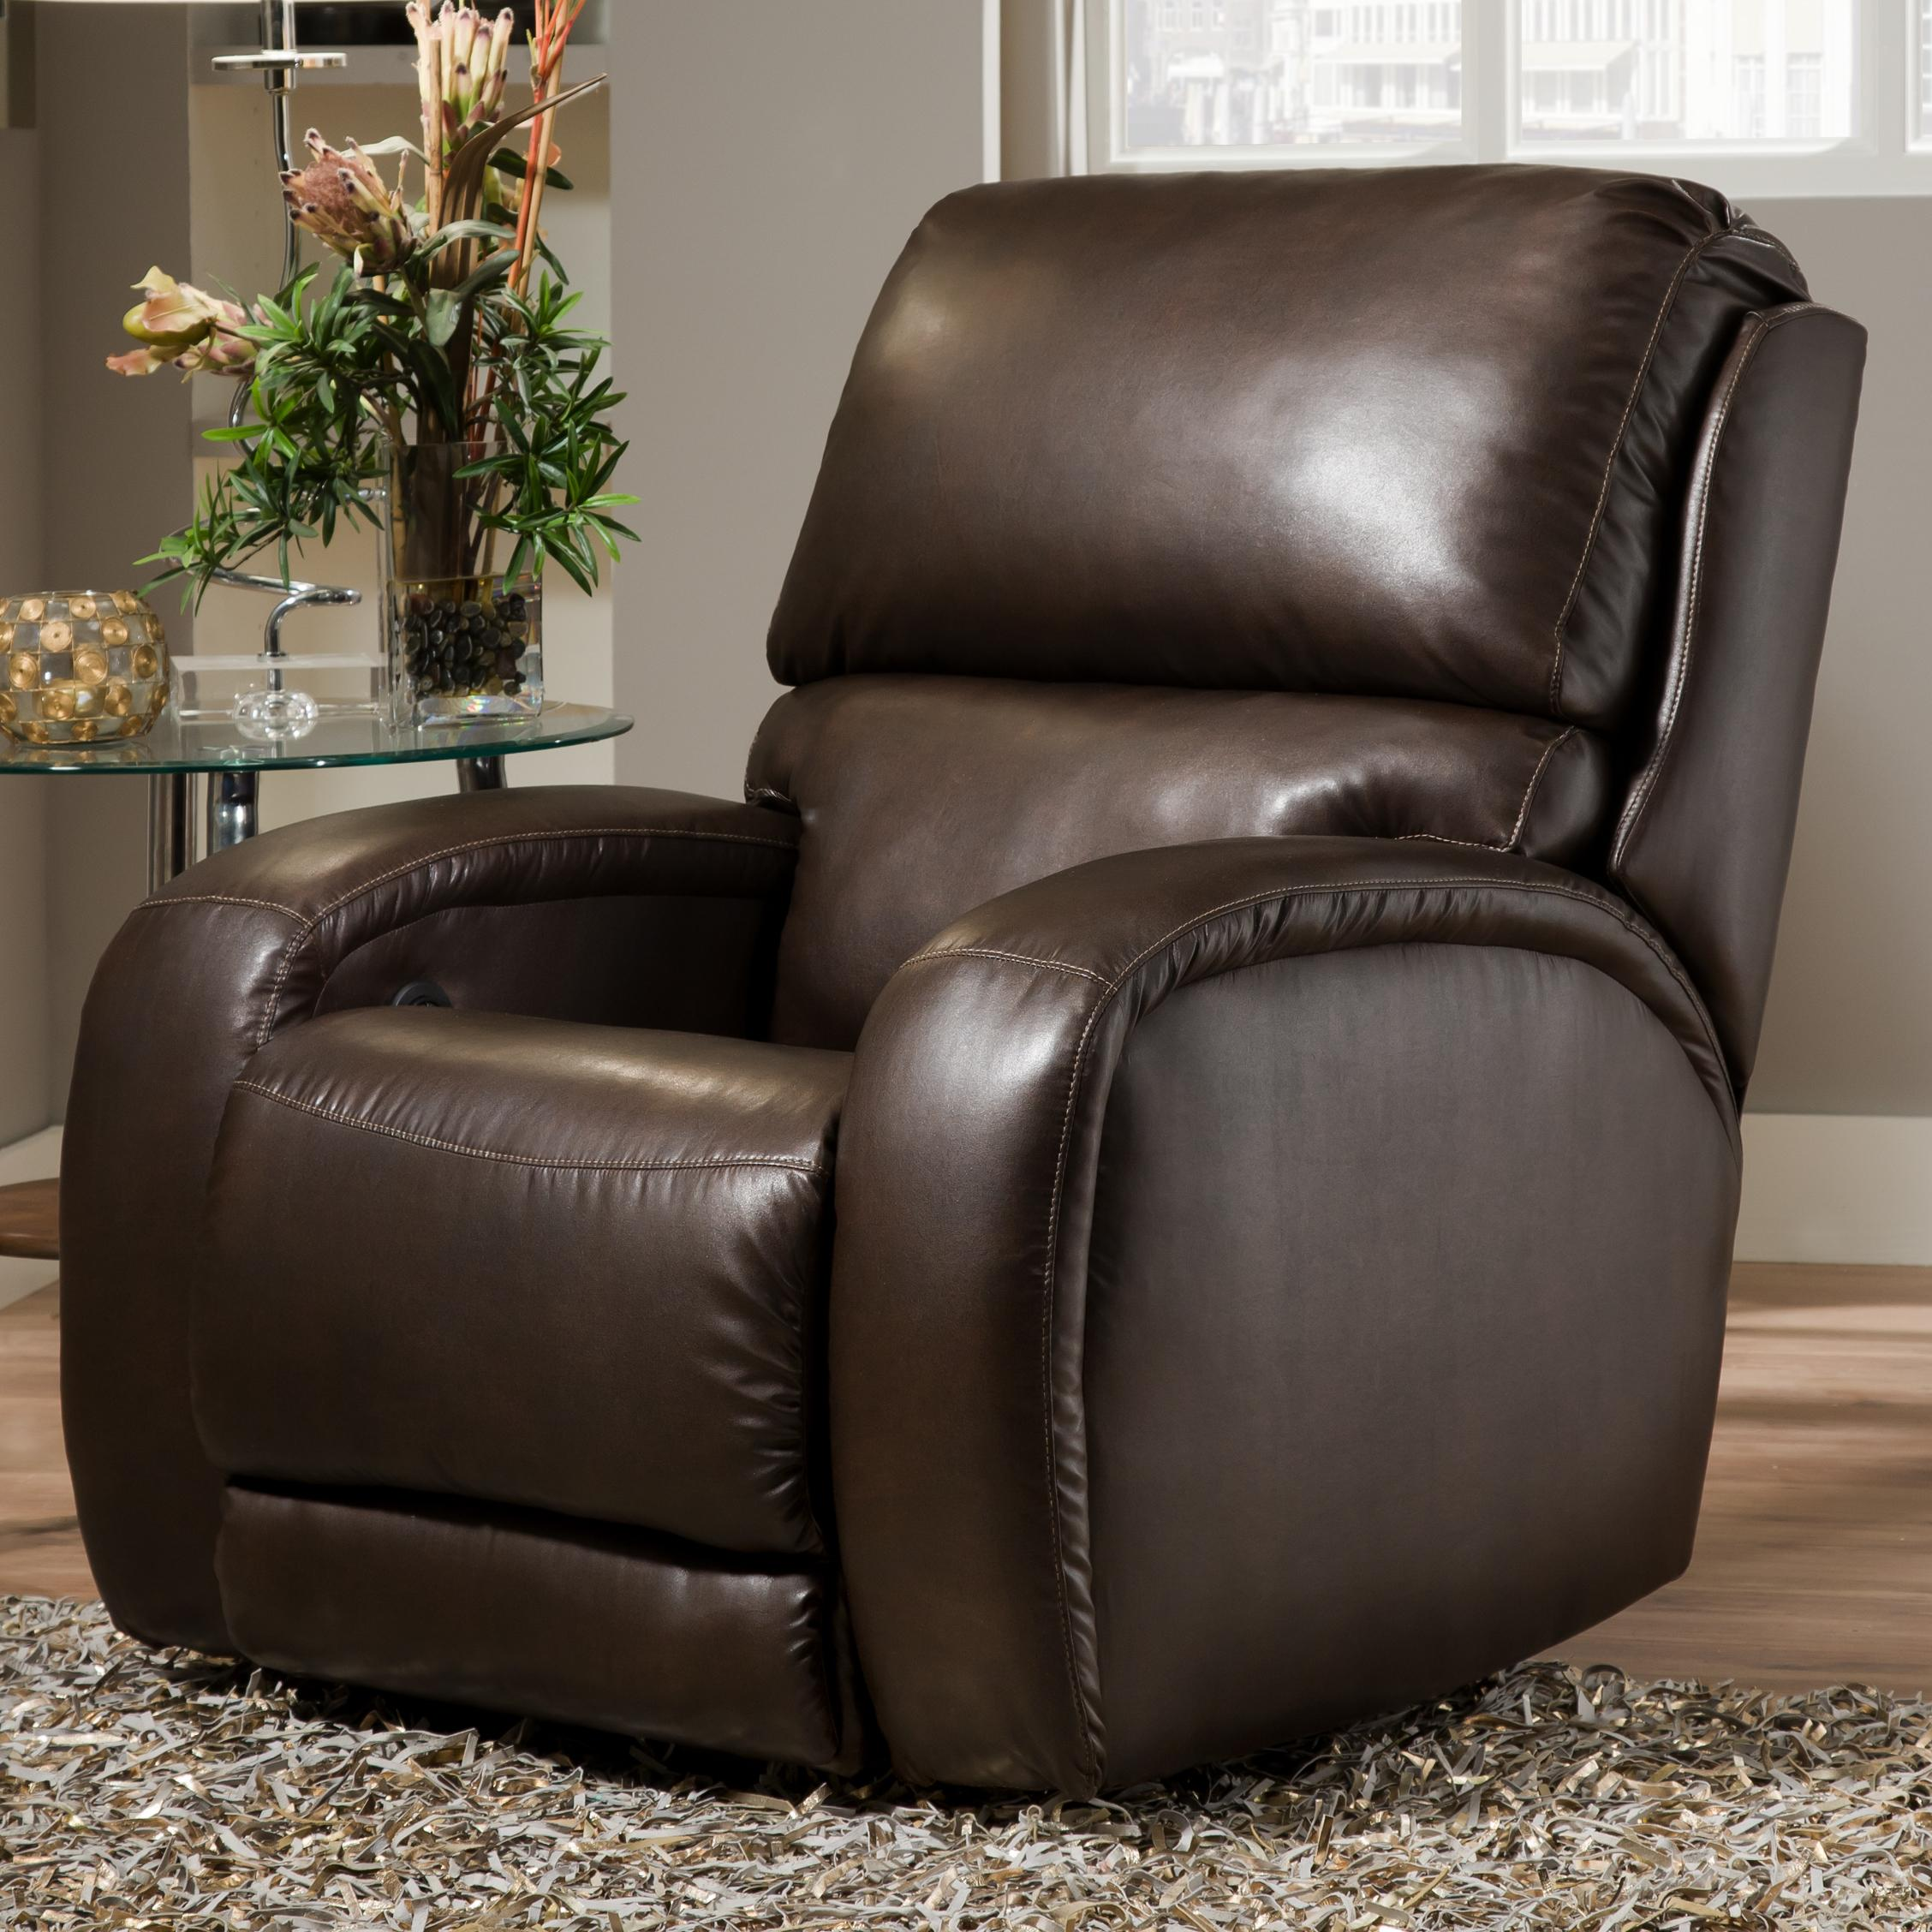 Fandango Power ROCKER RECLINER  by Southern Motion at Bullard Furniture